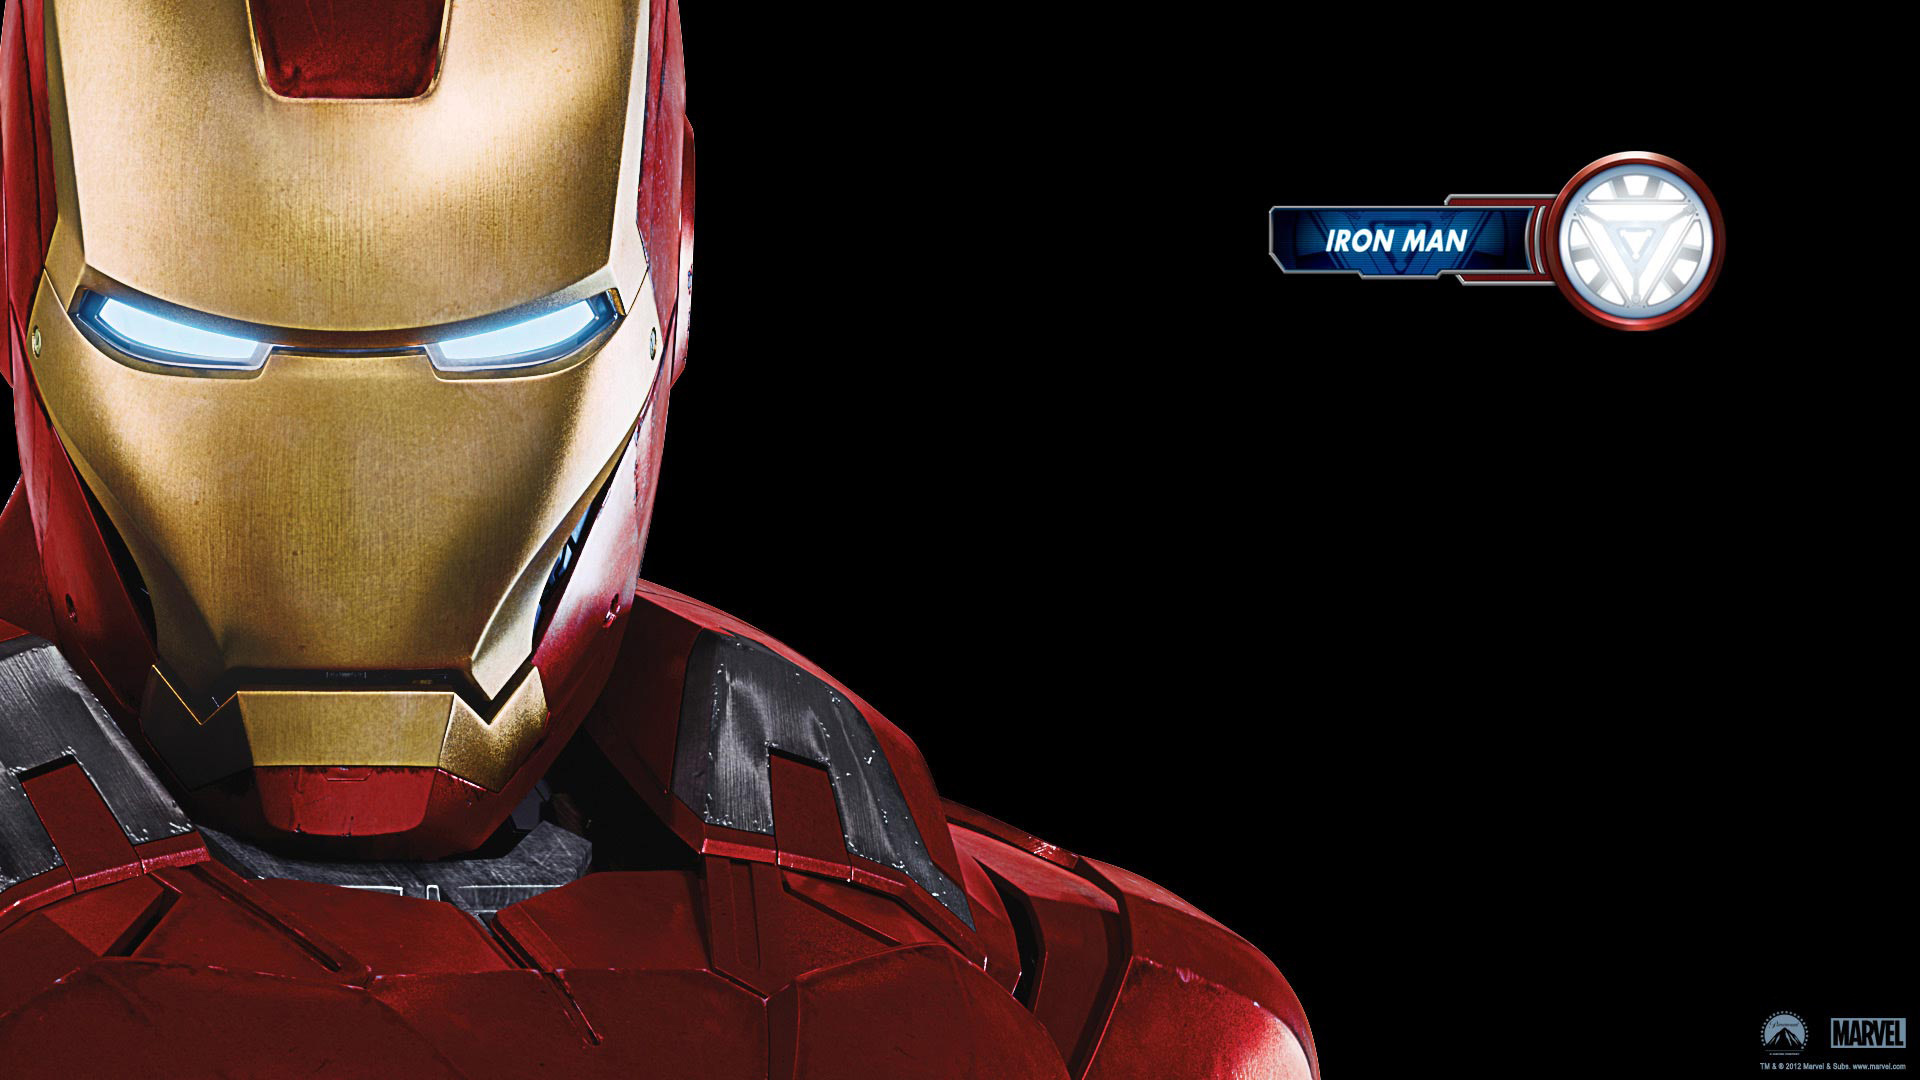 Iron Man in 2012 Avengers wallpaper